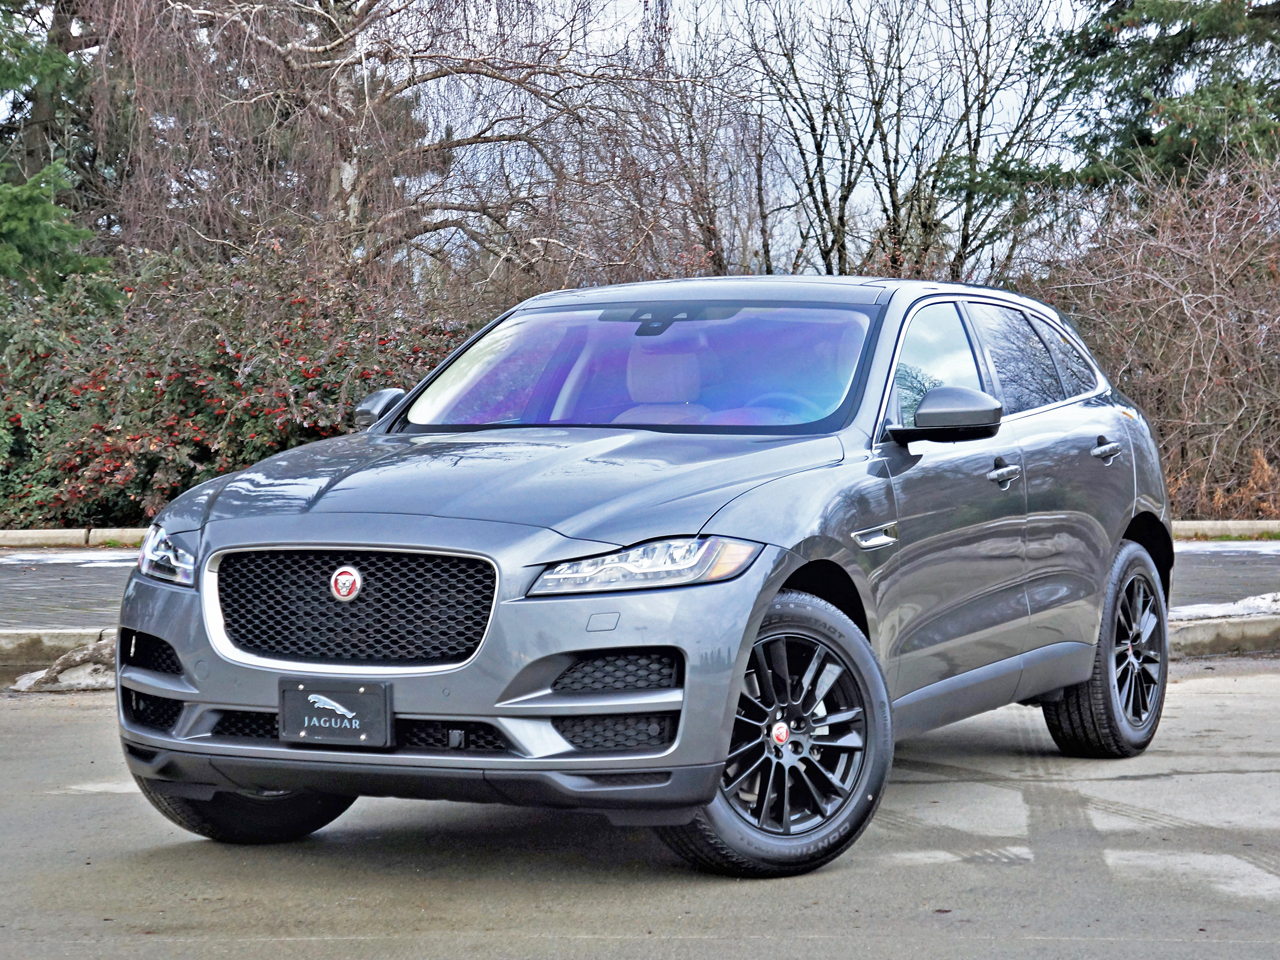 2017 jaguar f pace 20d awd prestige road test review carcostcanada. Black Bedroom Furniture Sets. Home Design Ideas